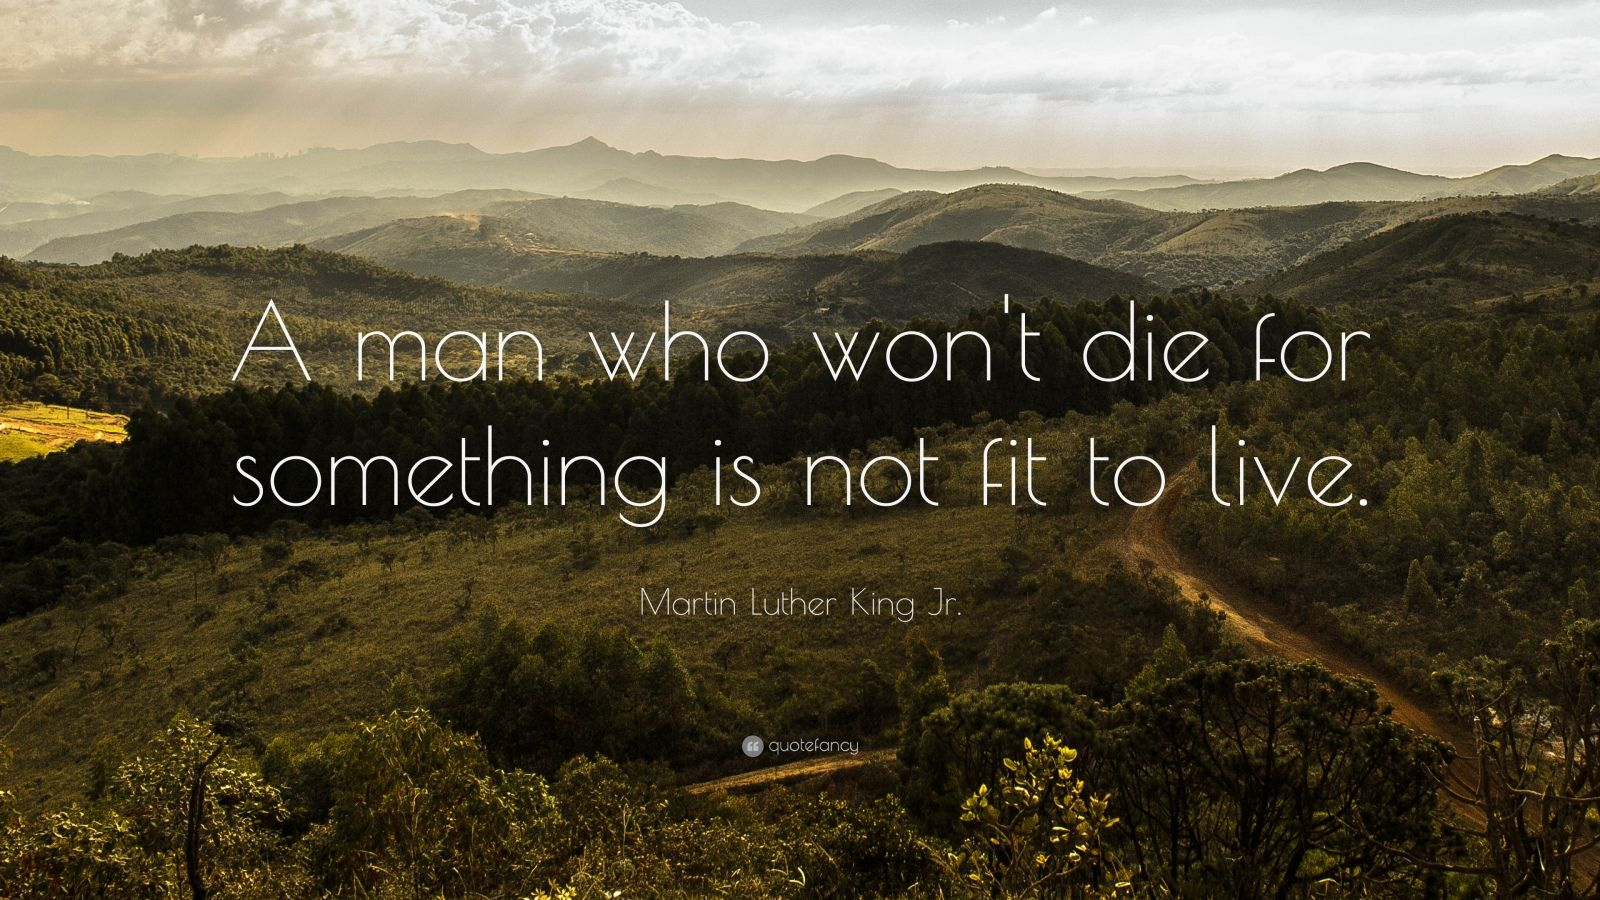 """Martin Luther King Jr. Quote: """"A man who won't die for something is not fit to live."""""""